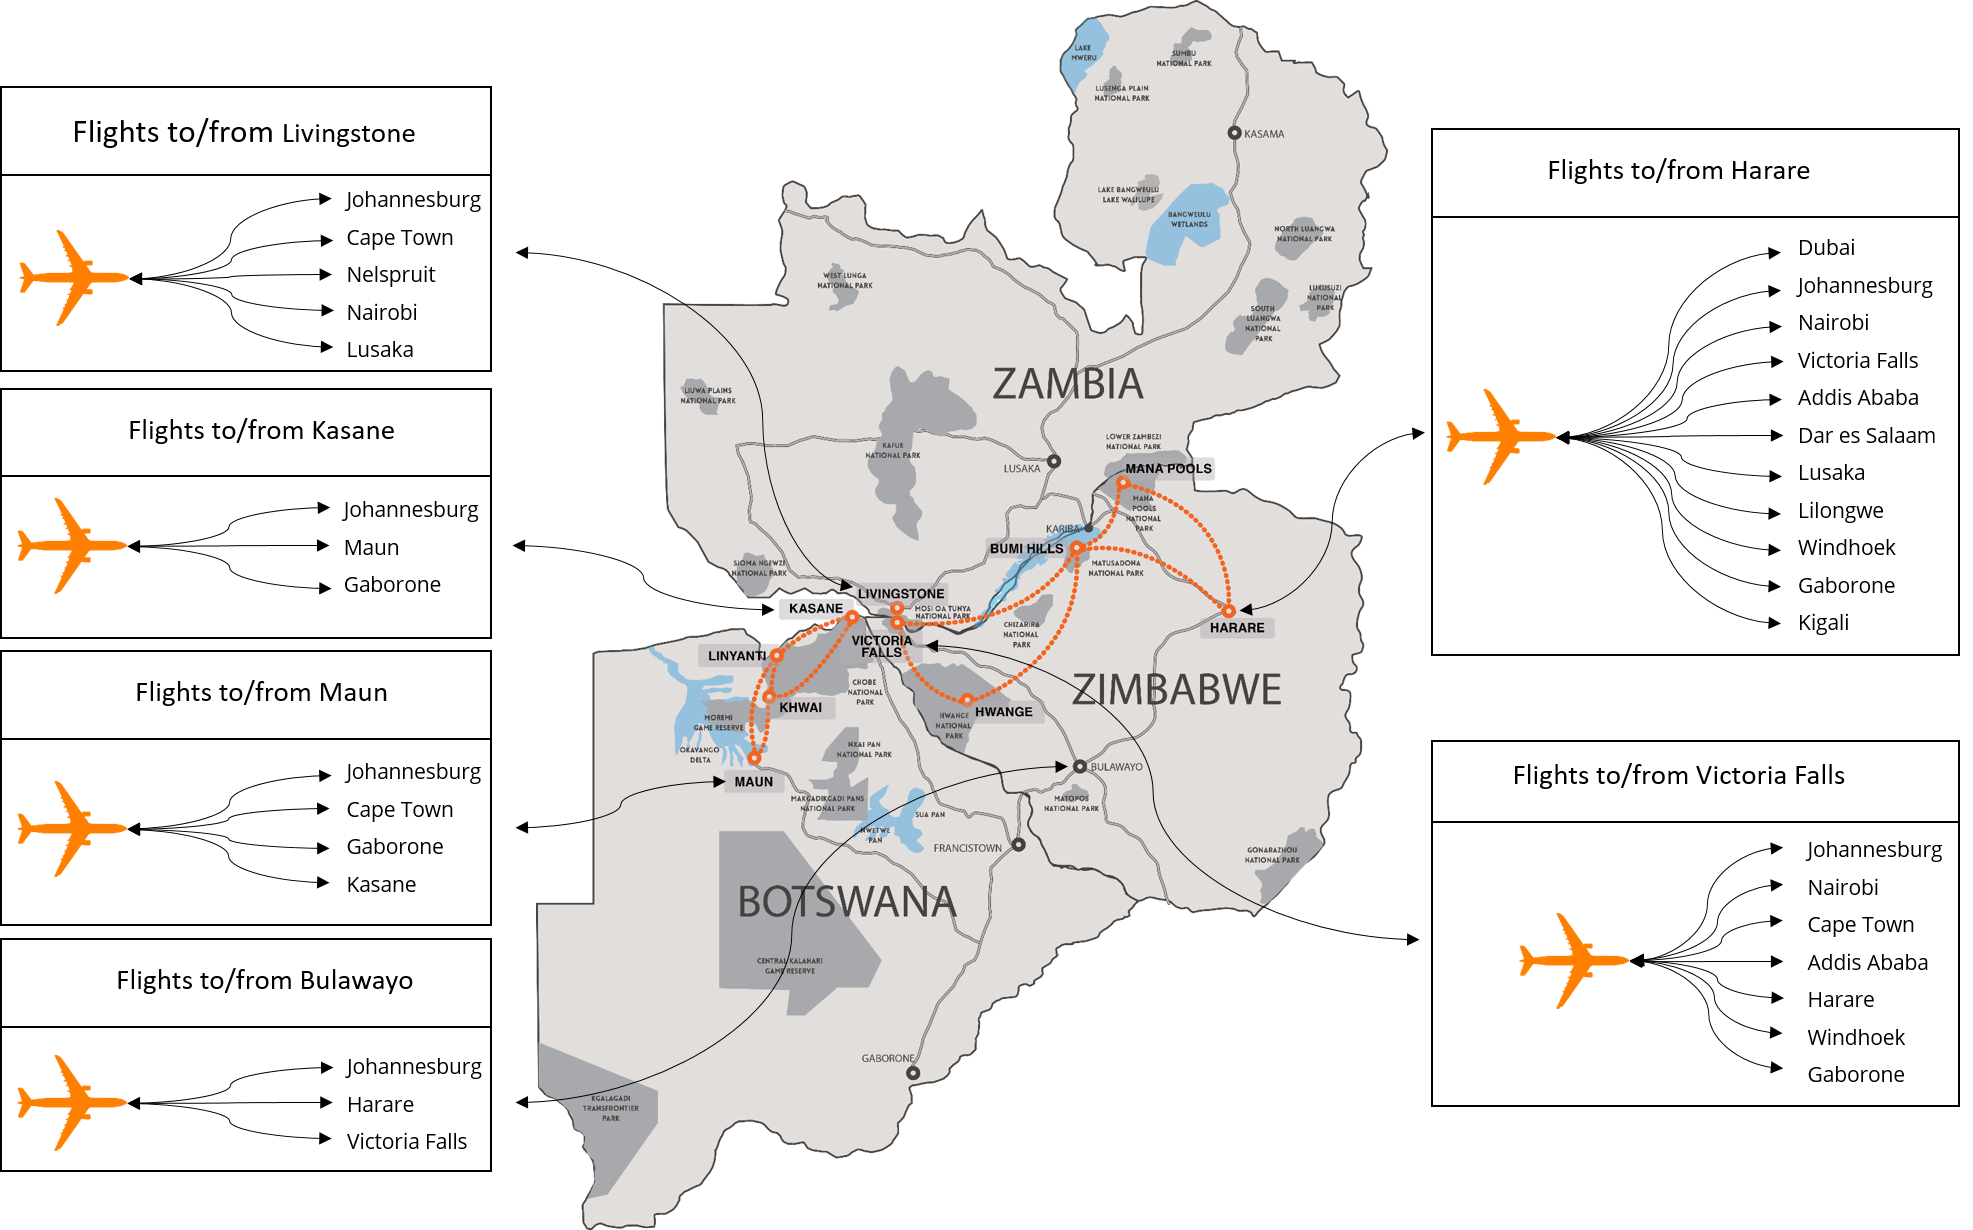 How to get to Zim & Bots - Entry Points